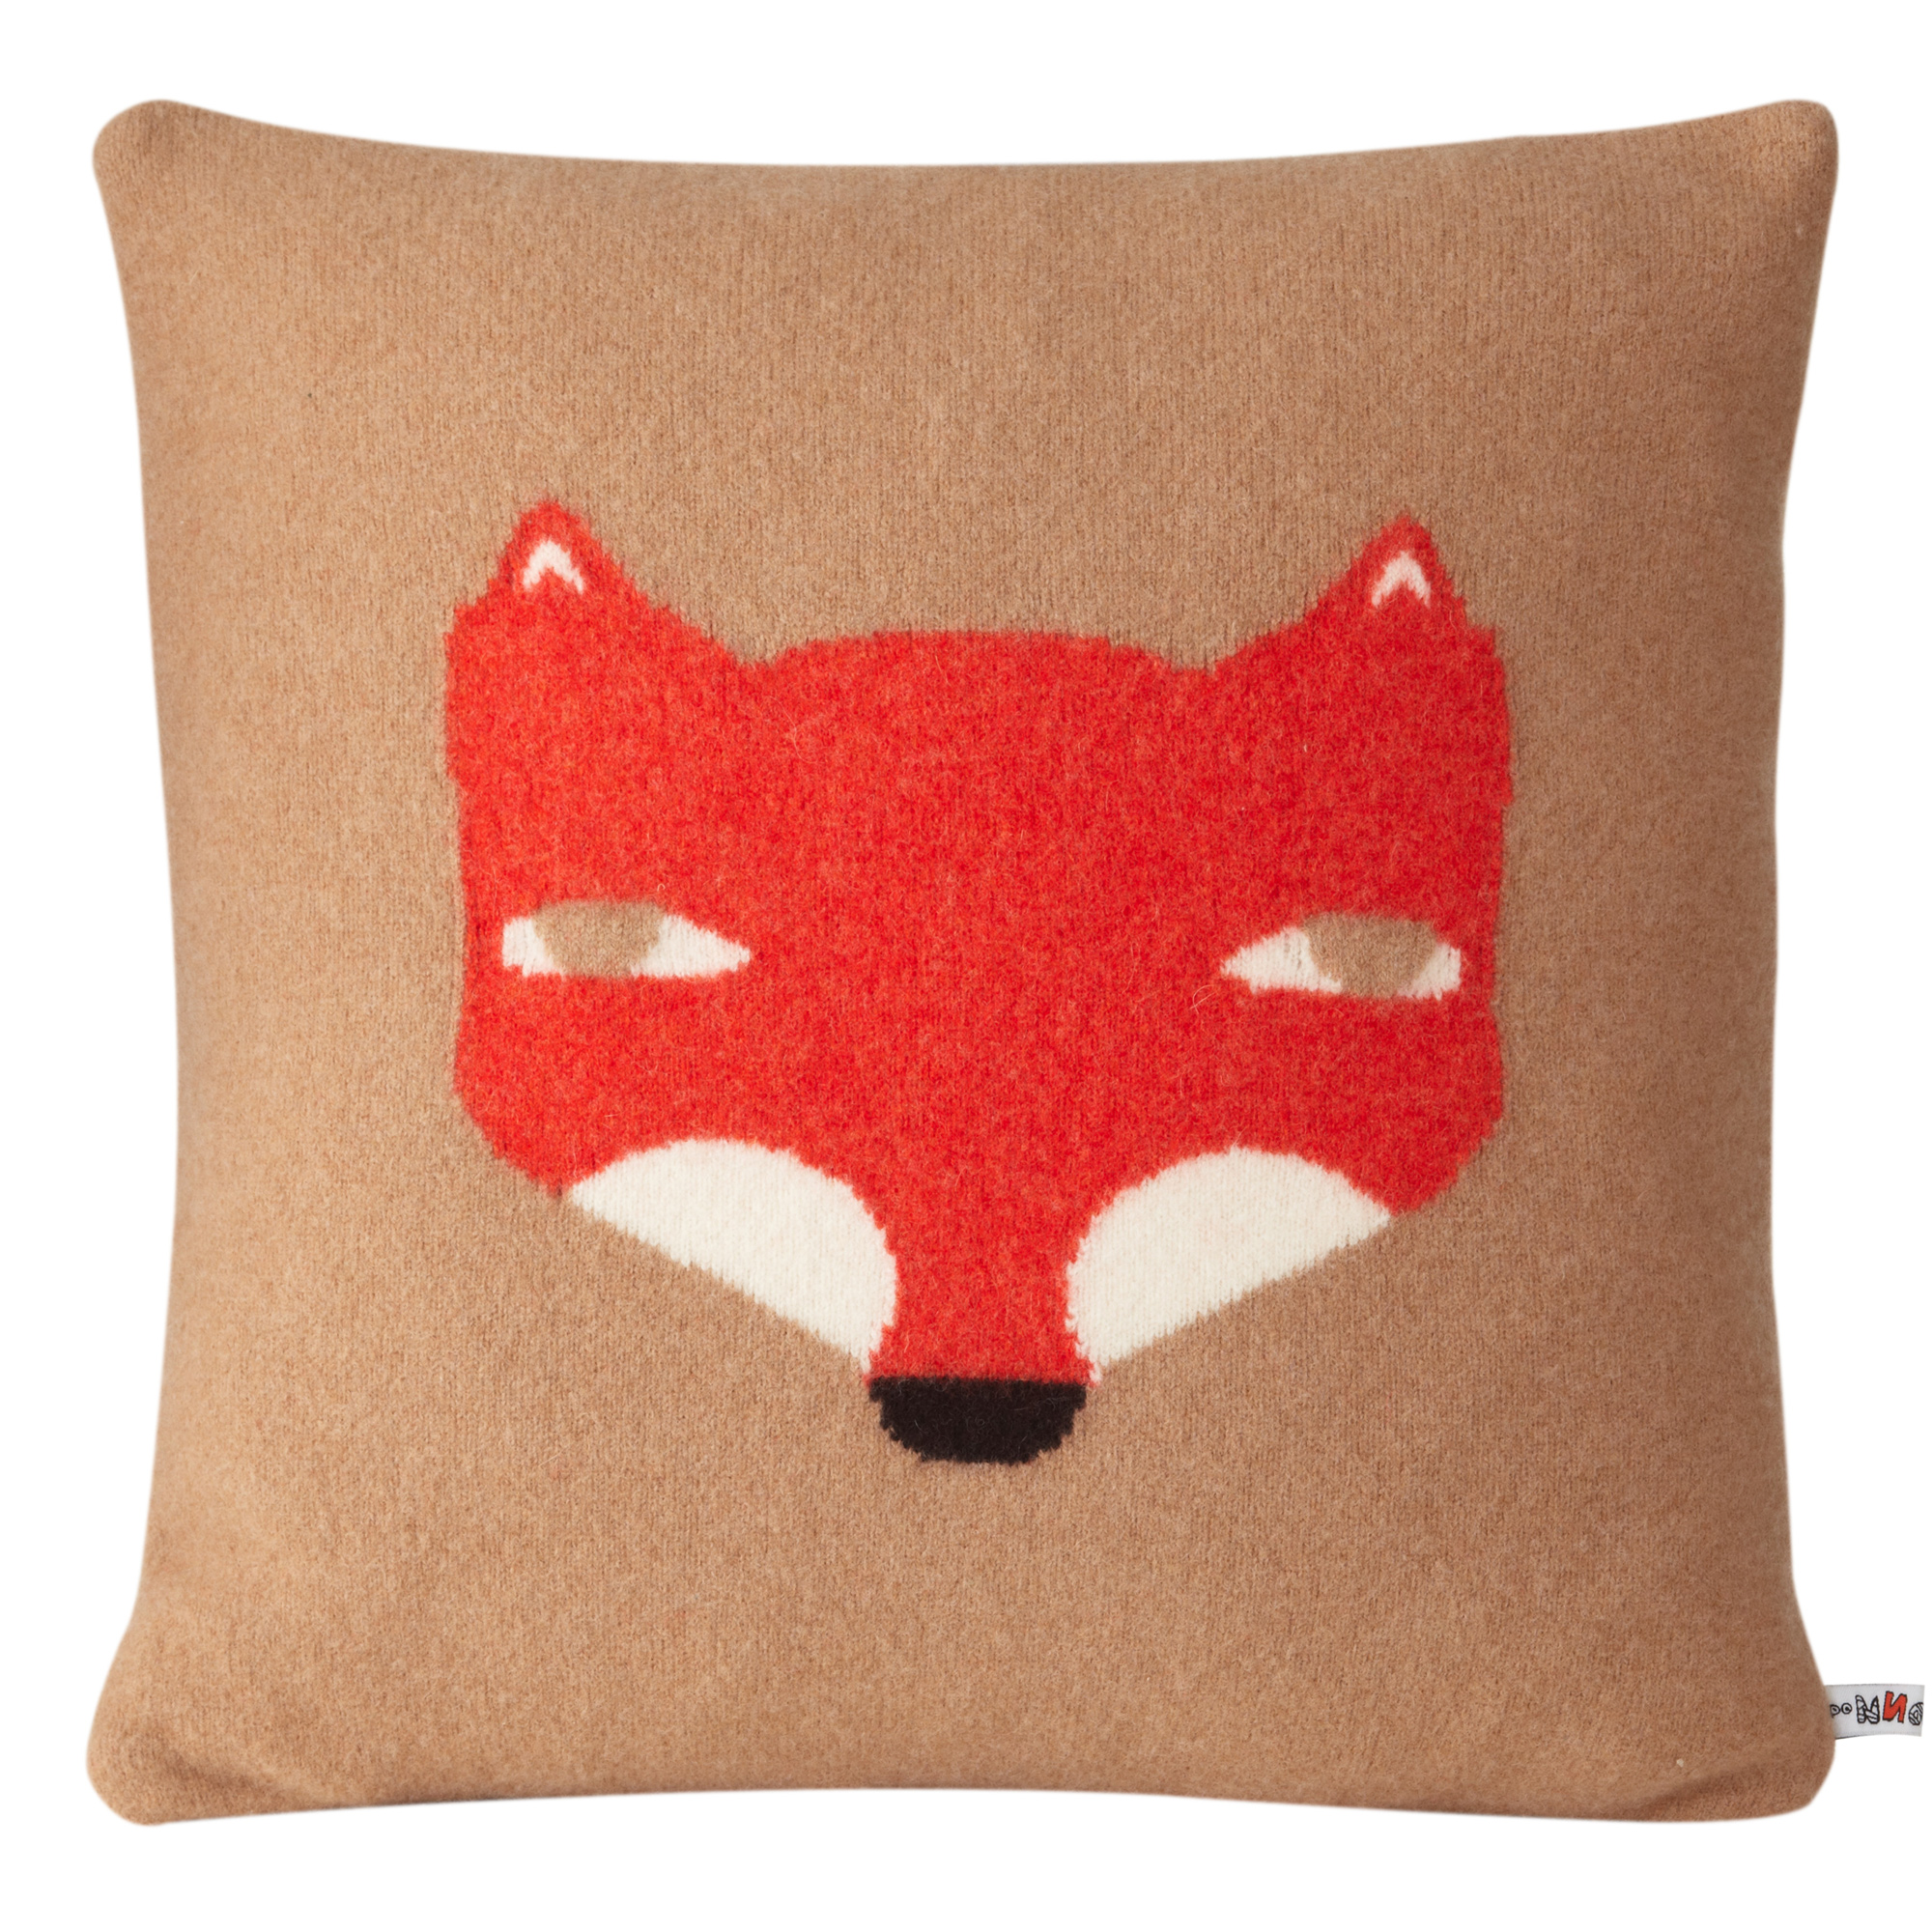 Fox Cushion Camel Donna Wilson